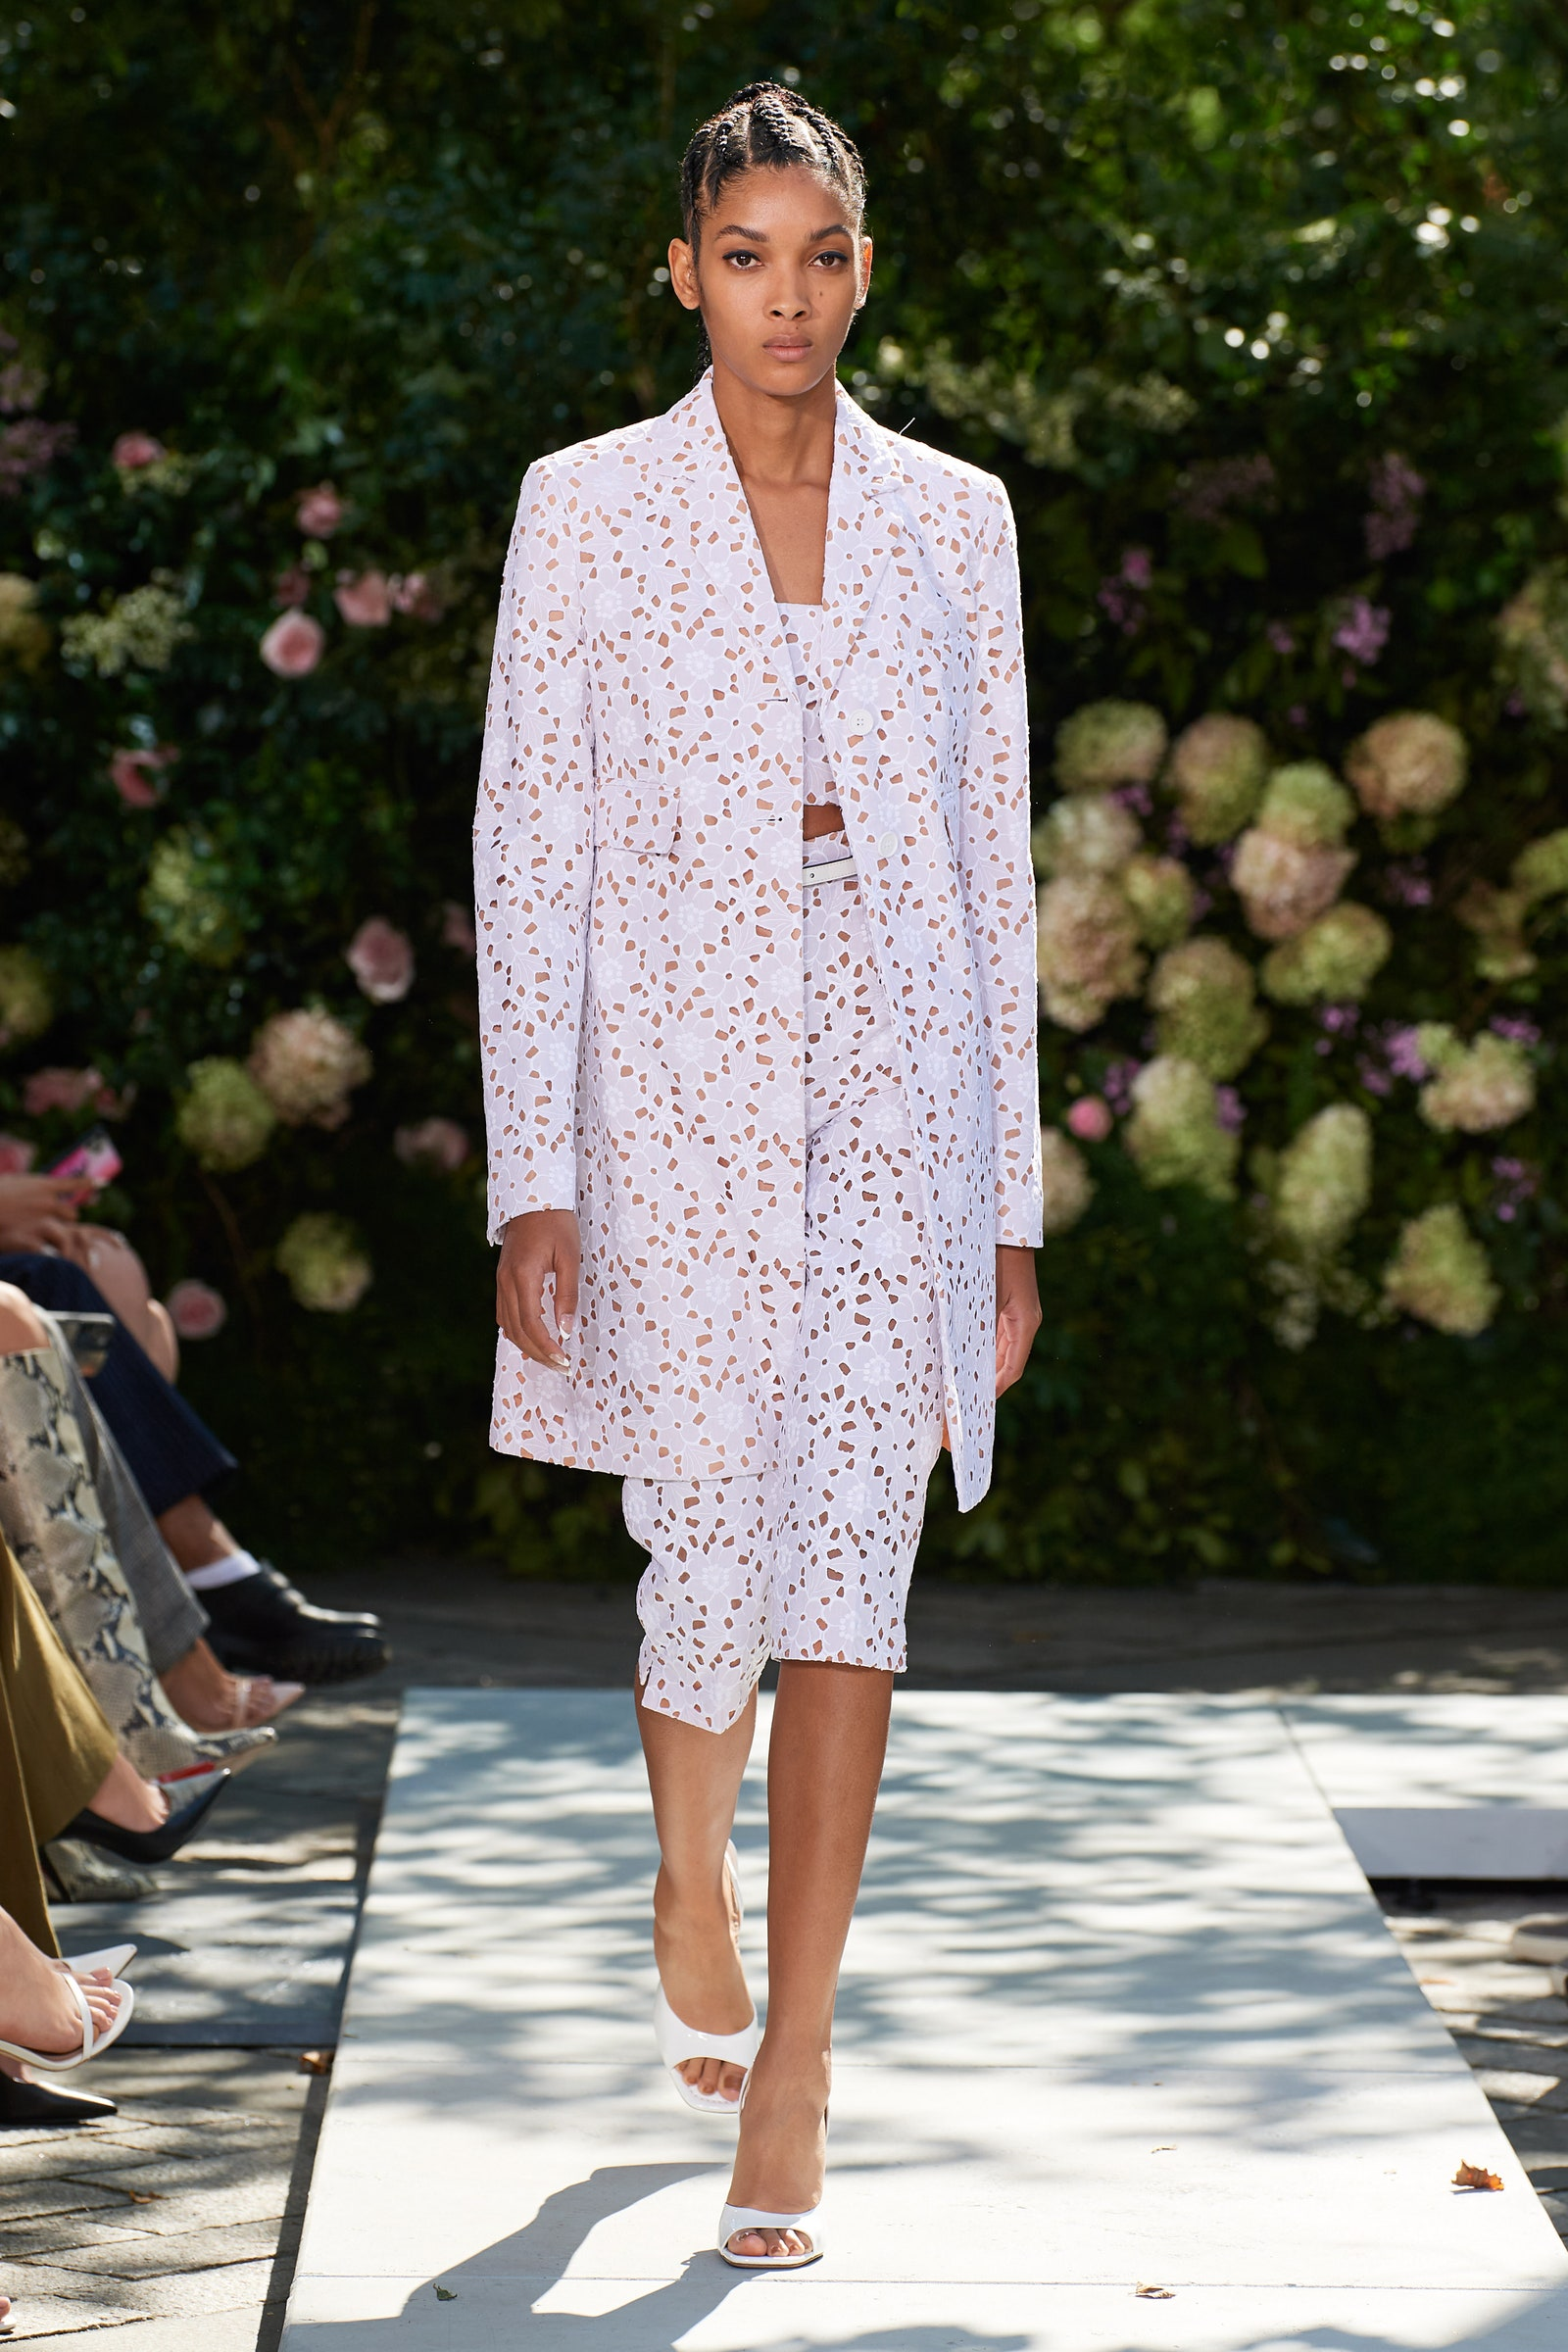 Micheal Kors SS'21 Collection